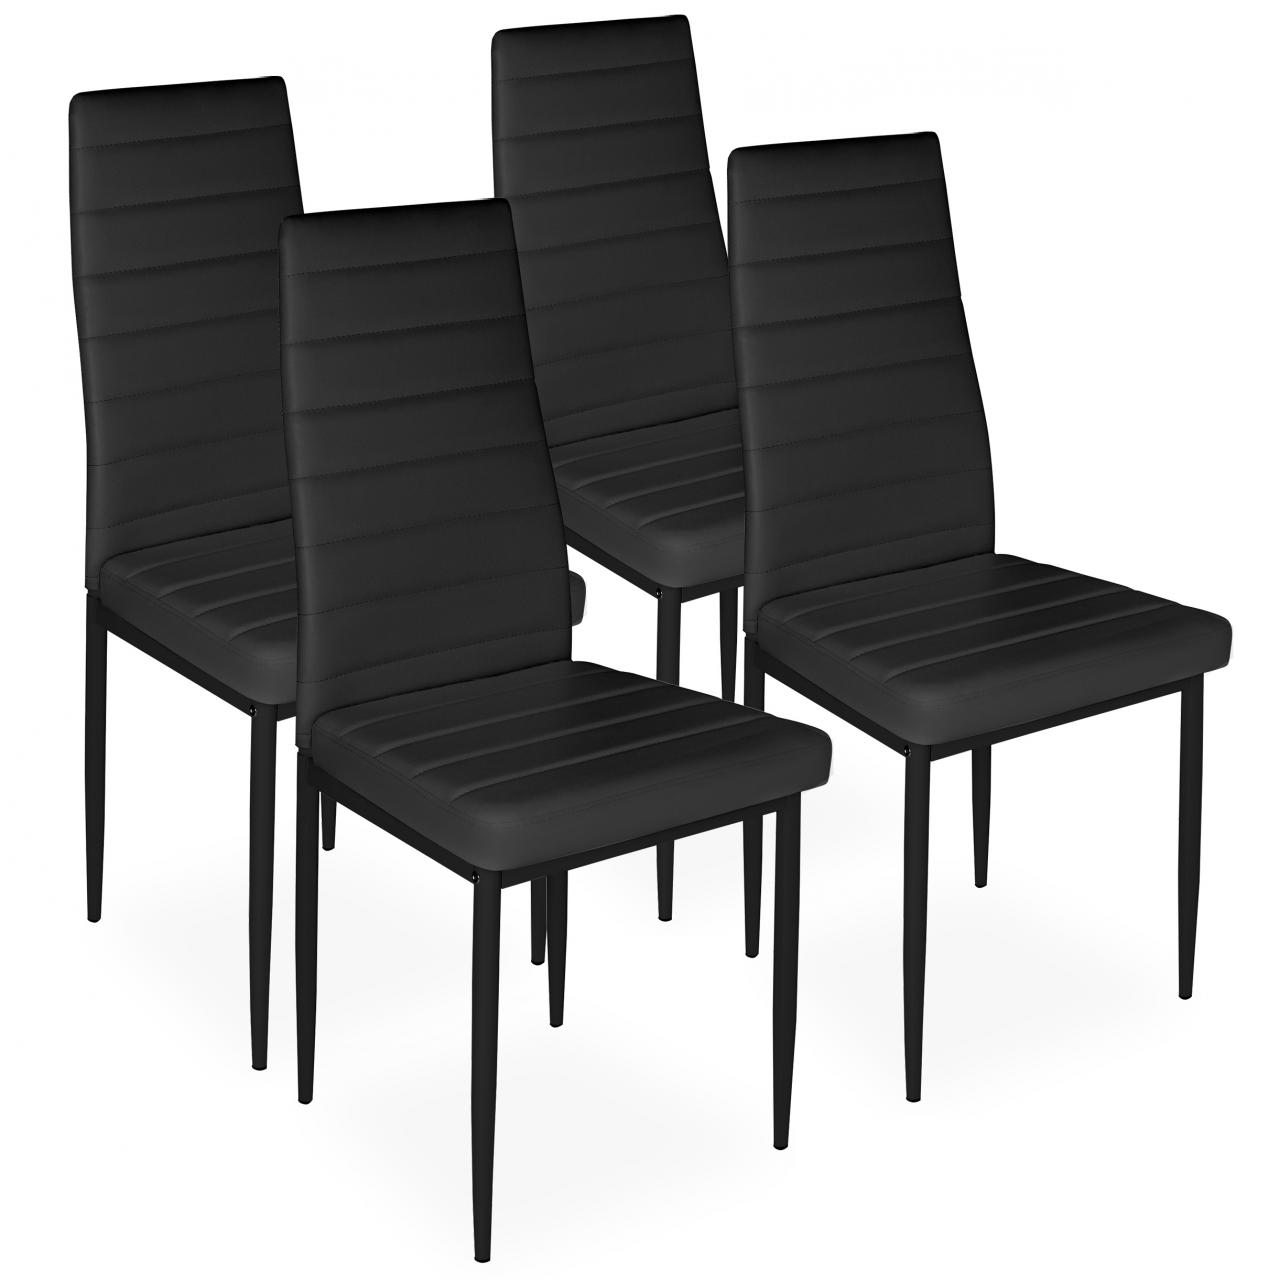 Upholstered Kitchen Chairs 4 Piece Dining Chair Set Upholstered Chair Kitchen Dining